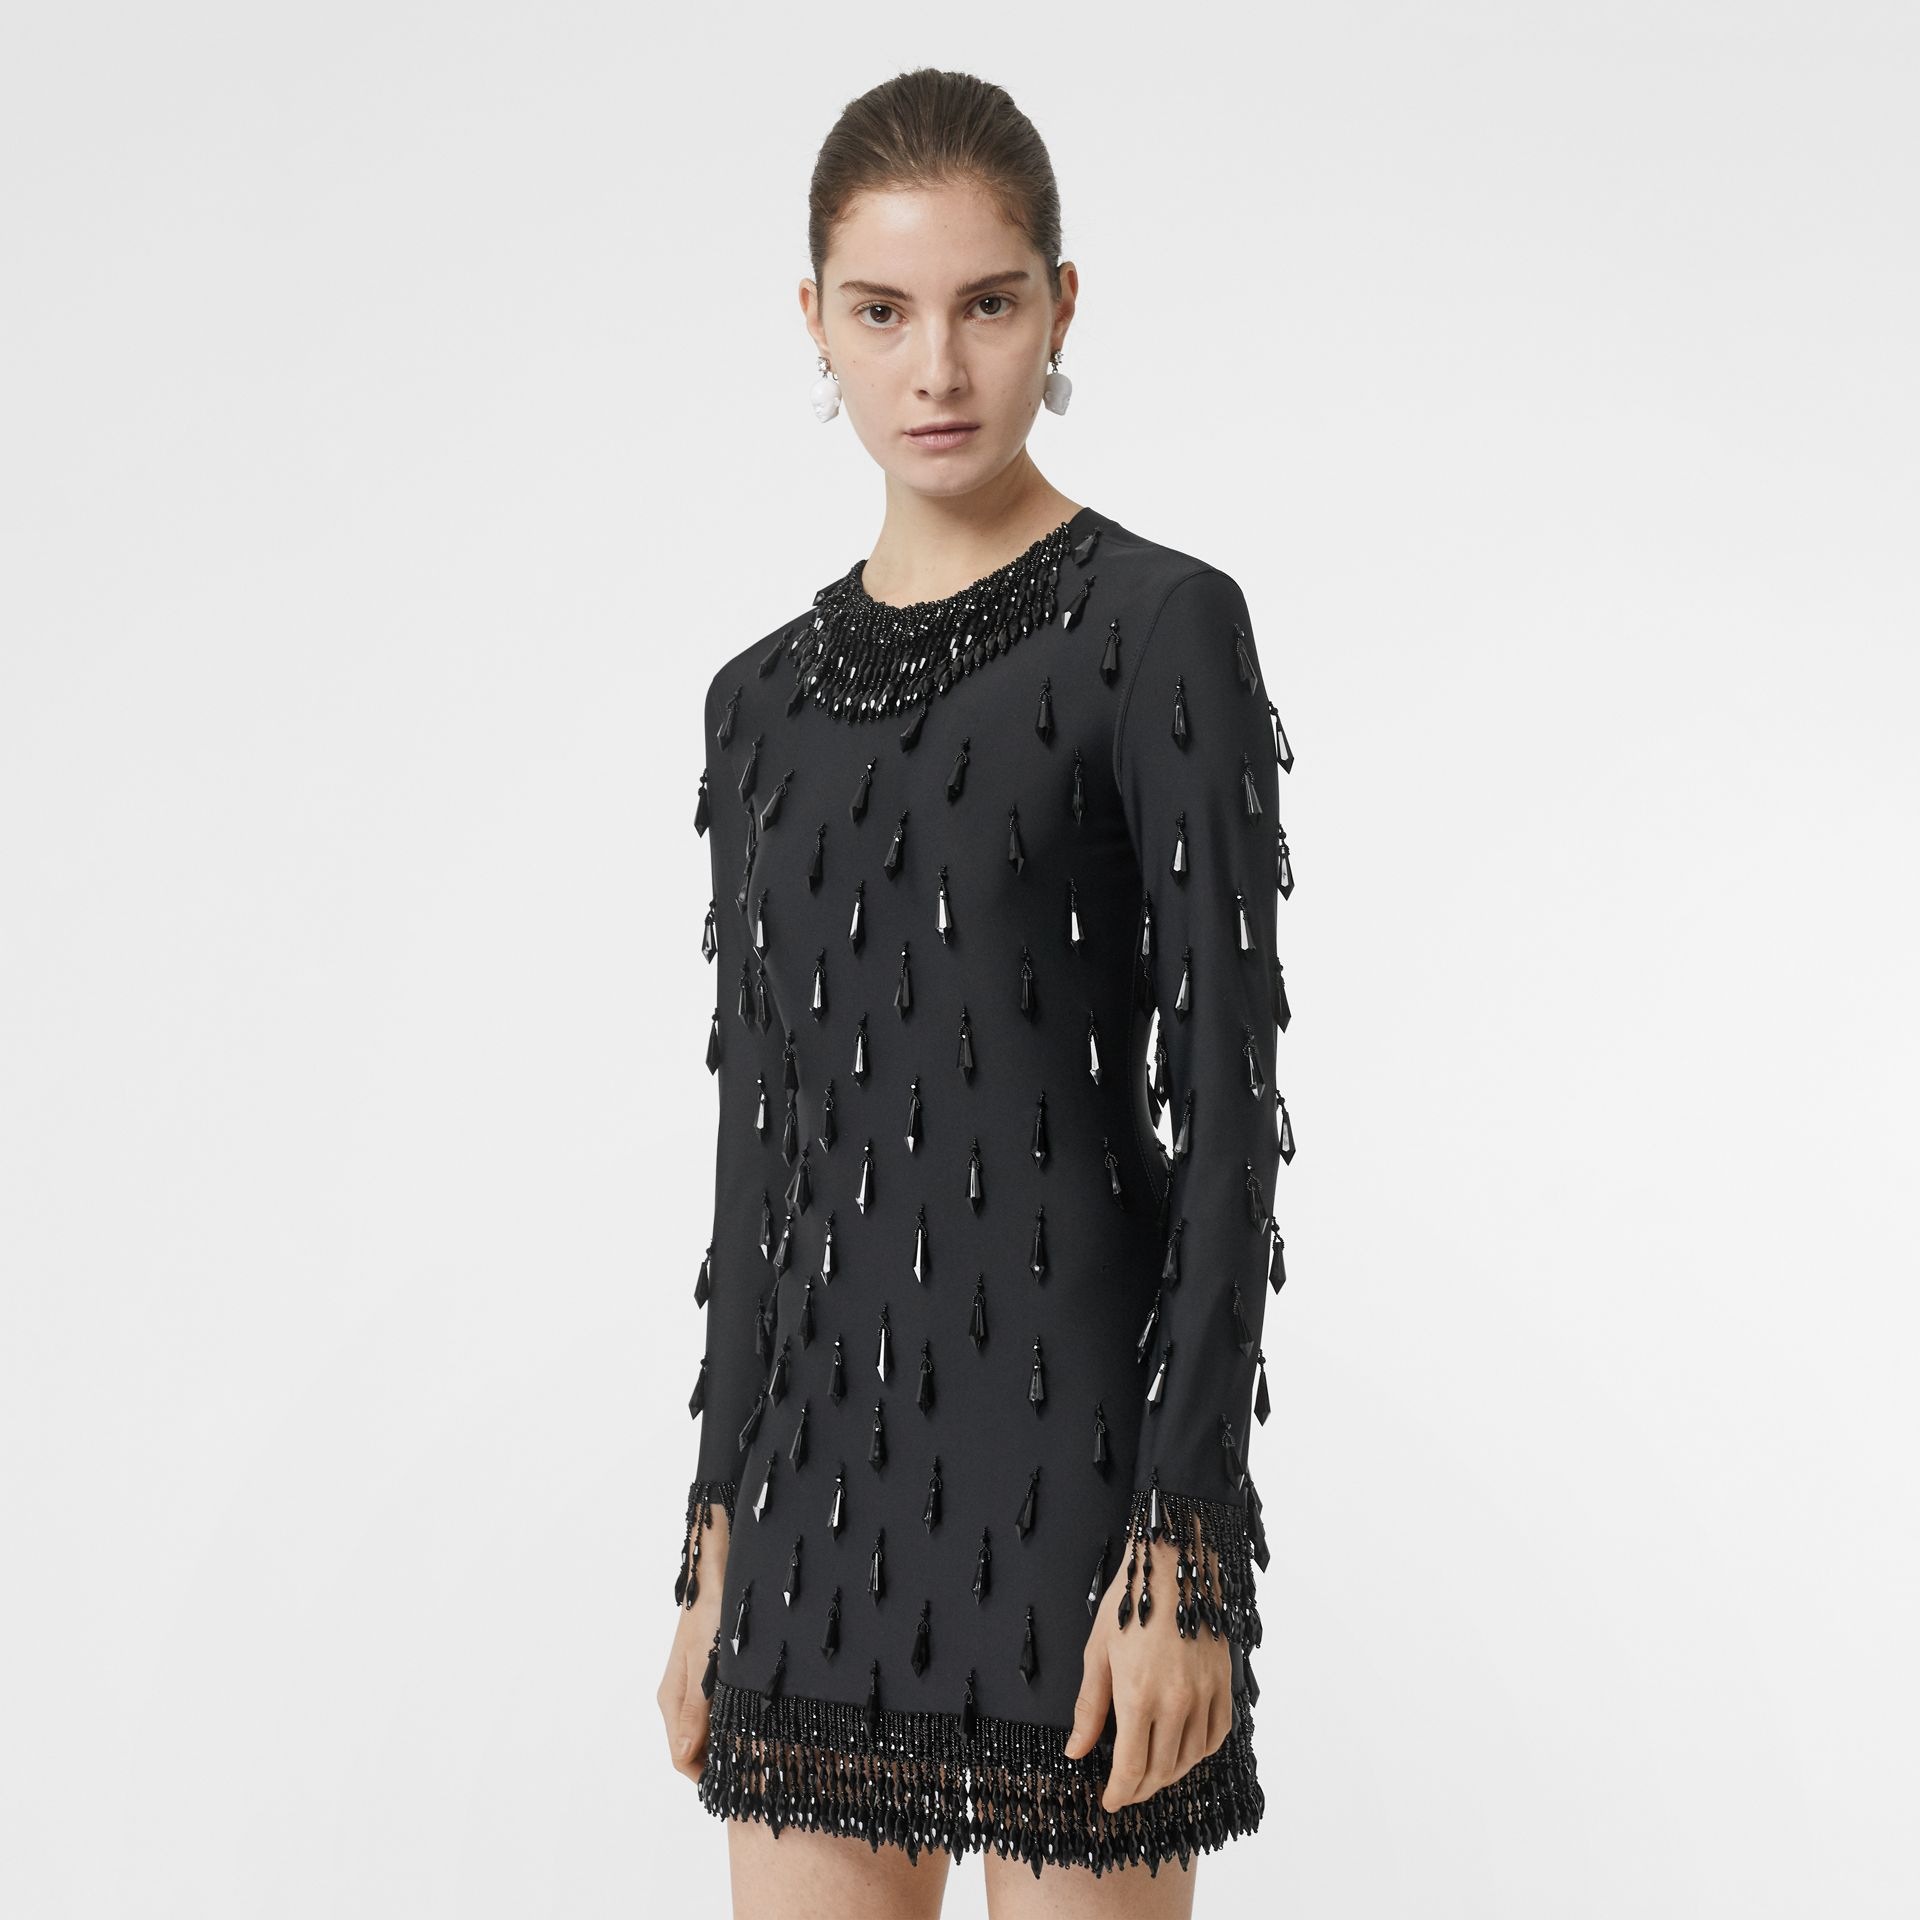 Long-sleeve Embellished Mini Dress in Black - Women | Burberry - gallery image 5